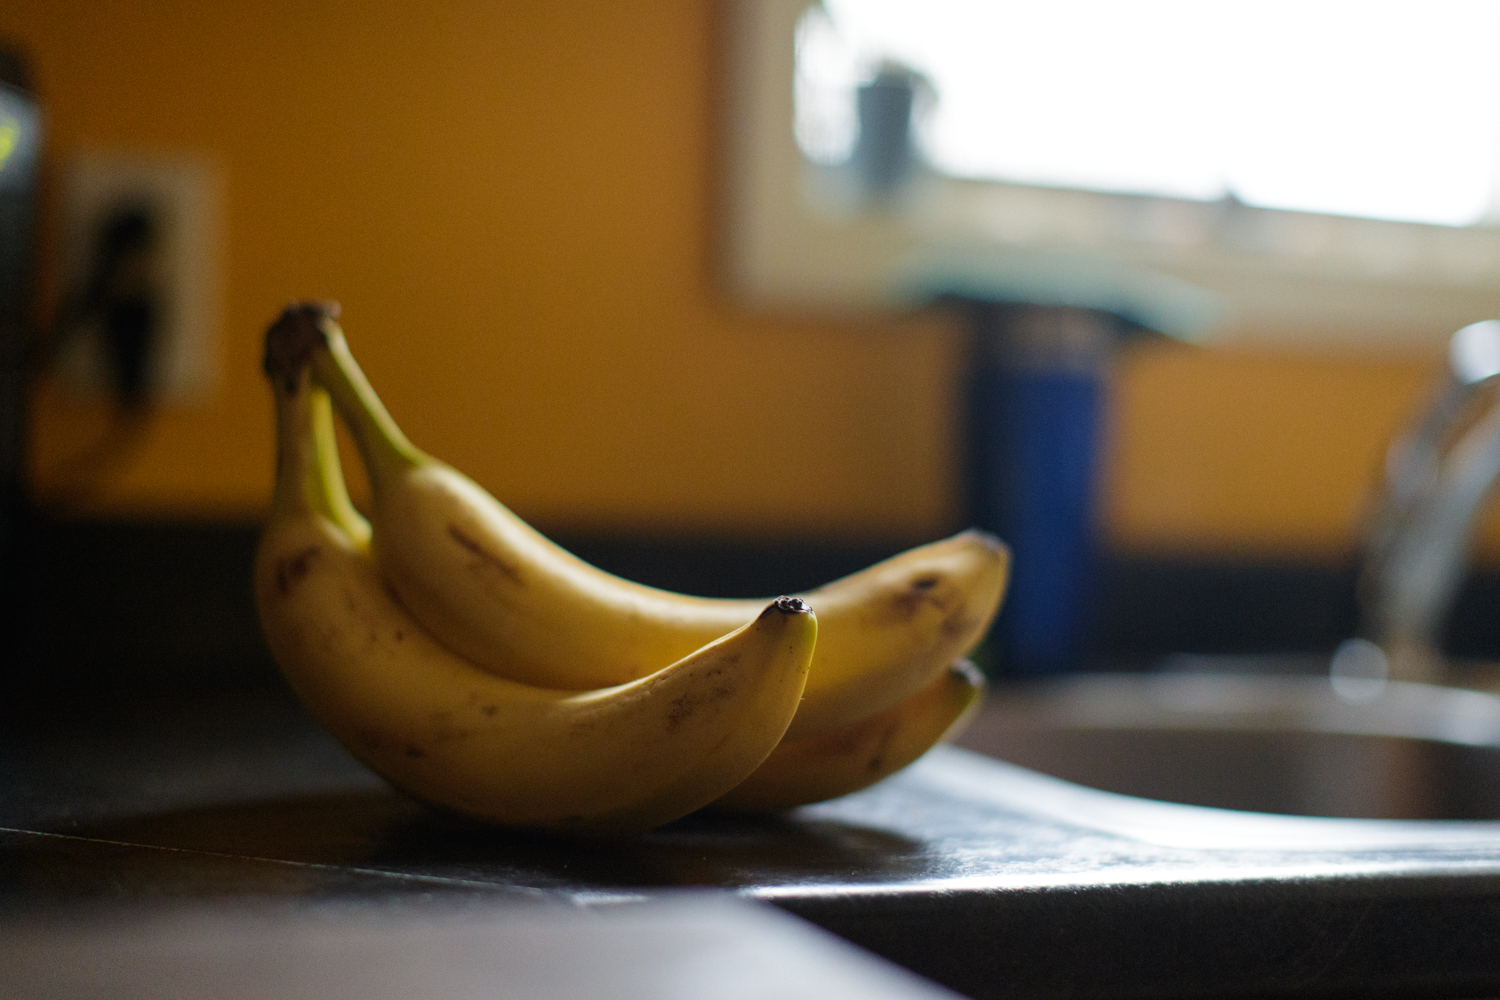 Bananas on a kitchen counter